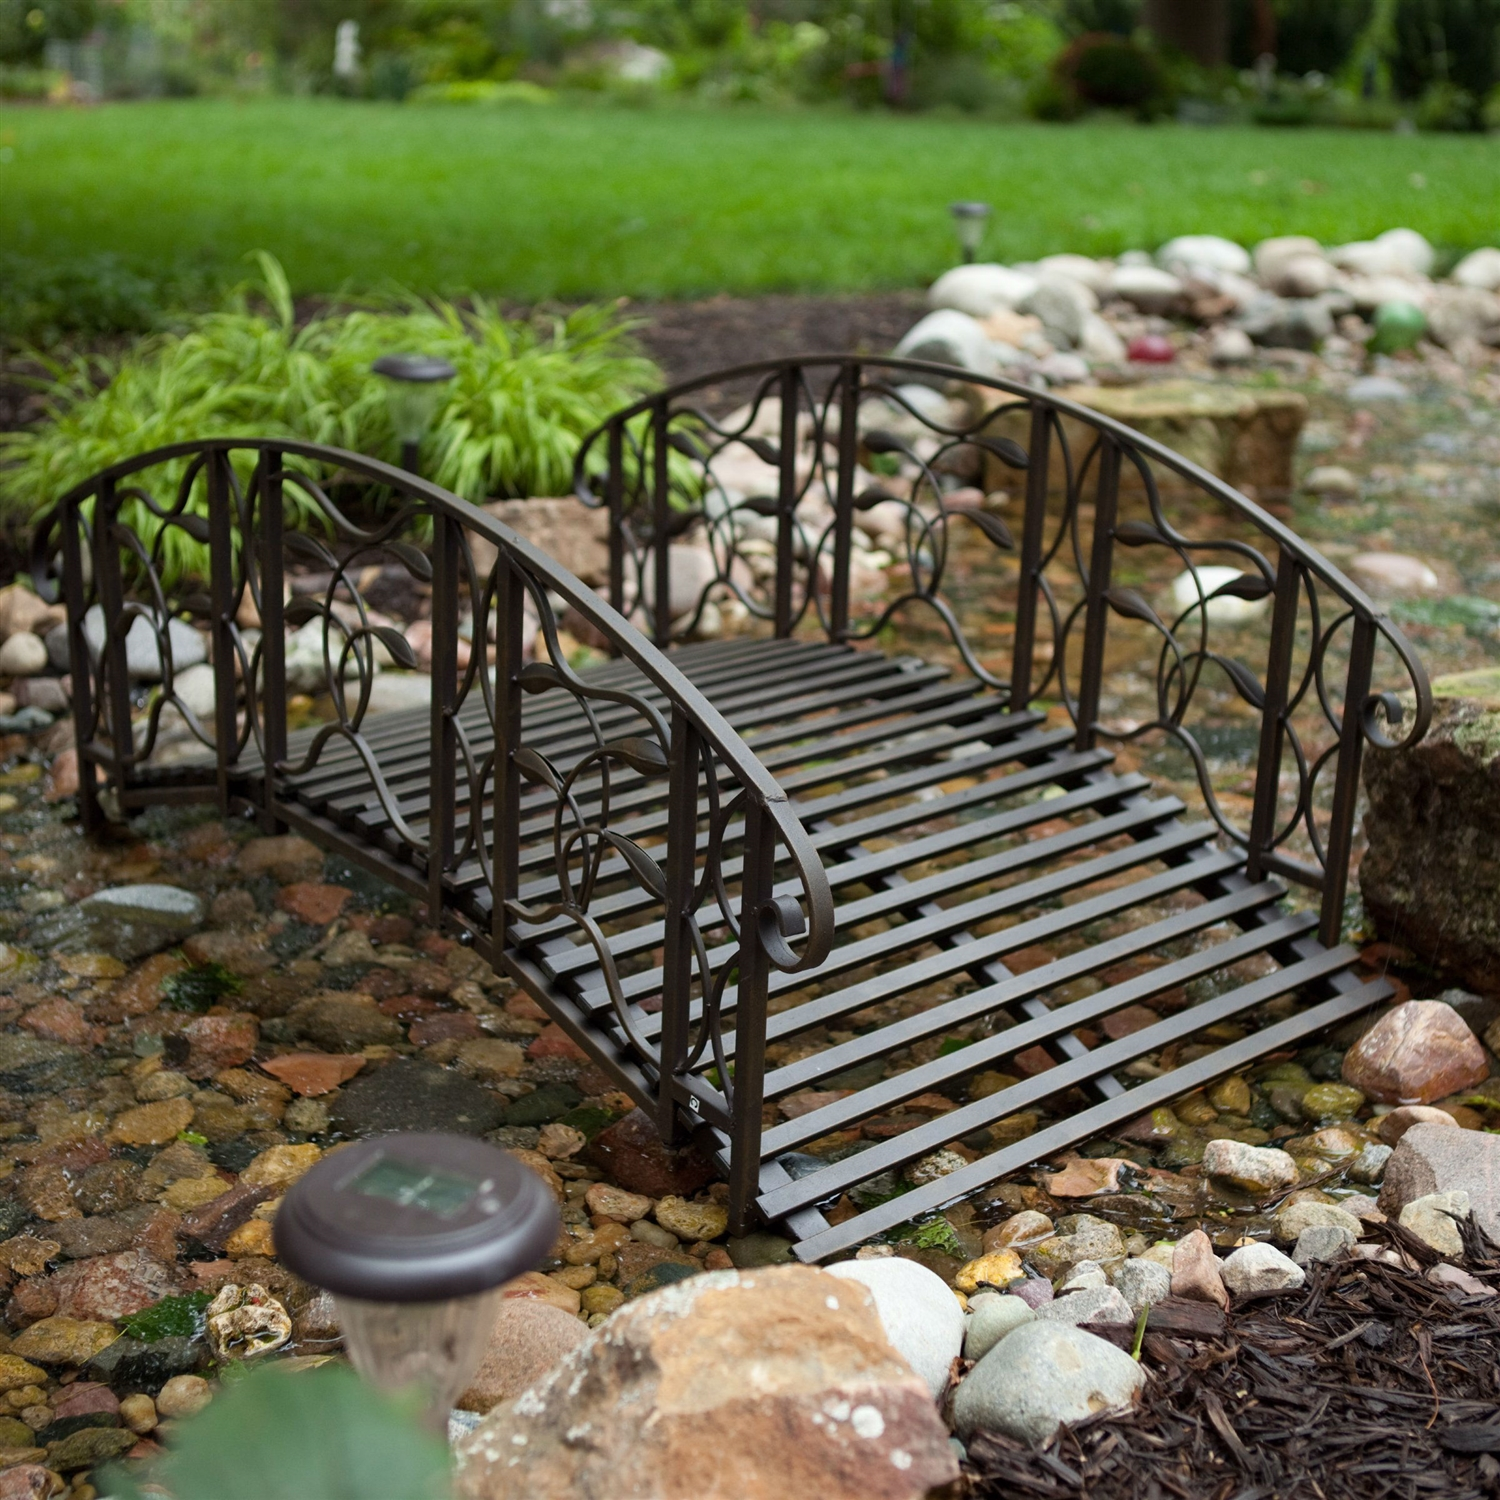 4-Foot Steel Frame Metal Garden Bridge In Rustic Weathered